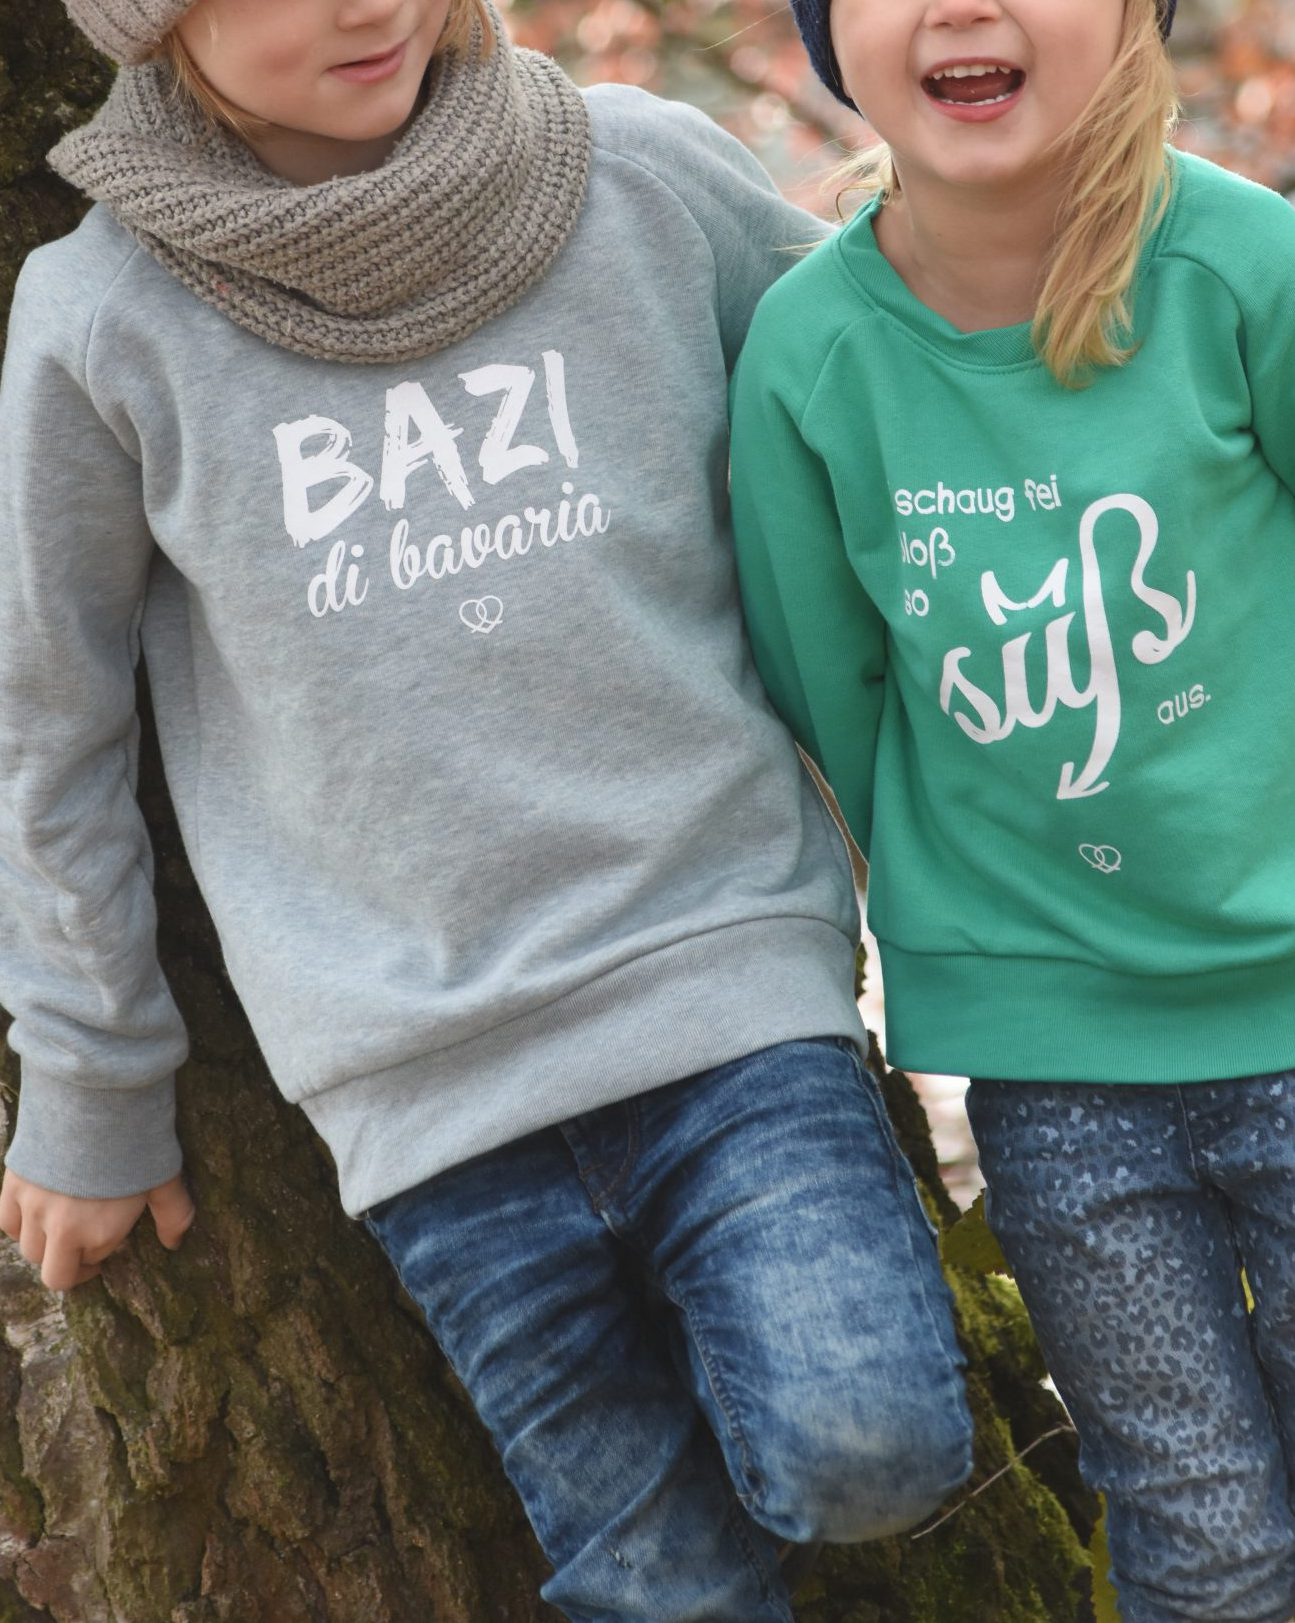 Bavarian Couture, Kindermode, Kidsfashion, Bambini Kollektion, fesche Kindershirts, Sweatshirt Kinder, Modemama, Mamainstyle, Mamablog